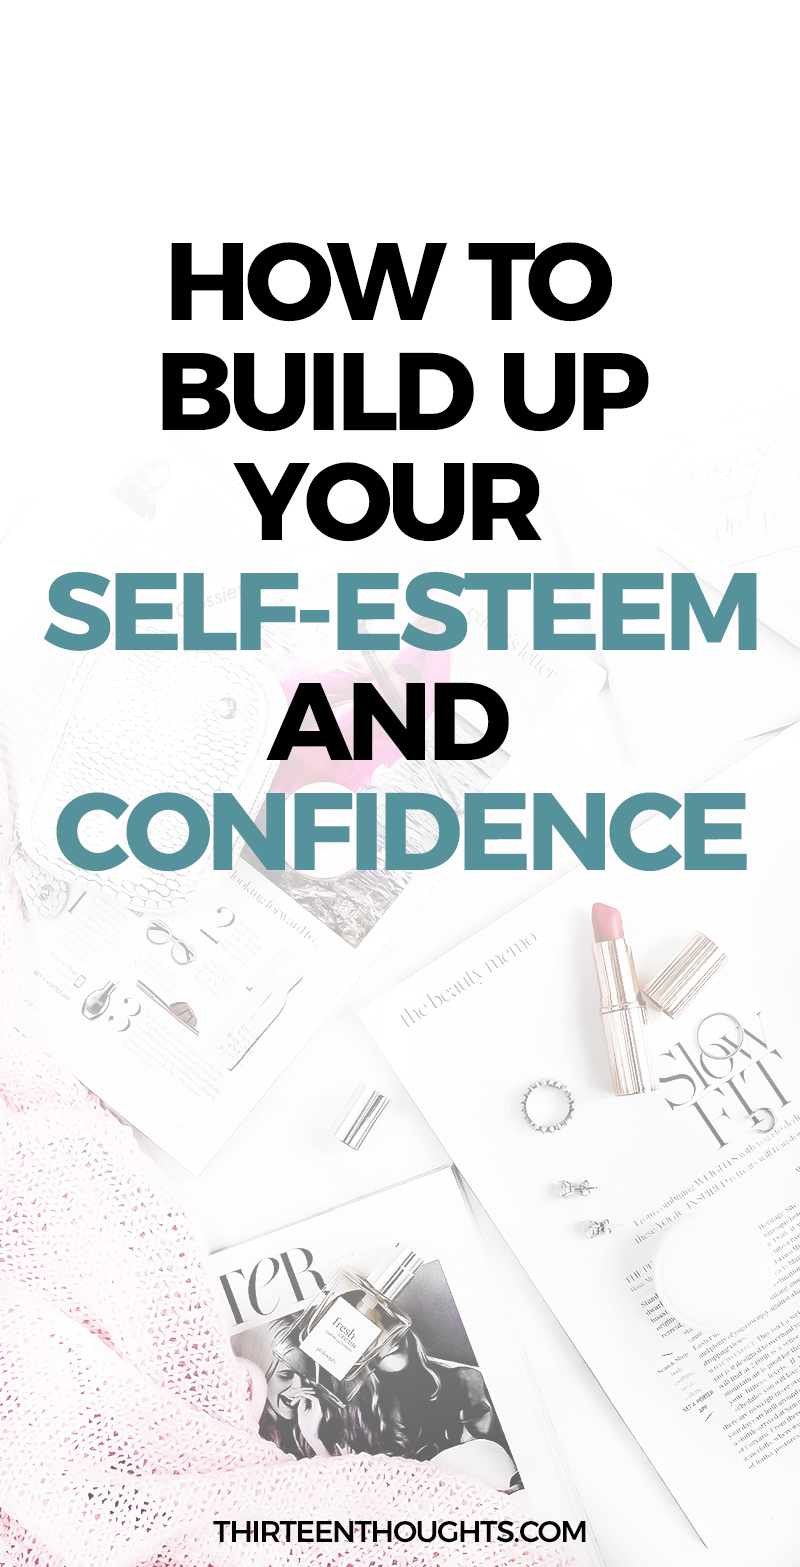 Building up your self-esteem and confidence #happiness #mindfulness #confidence